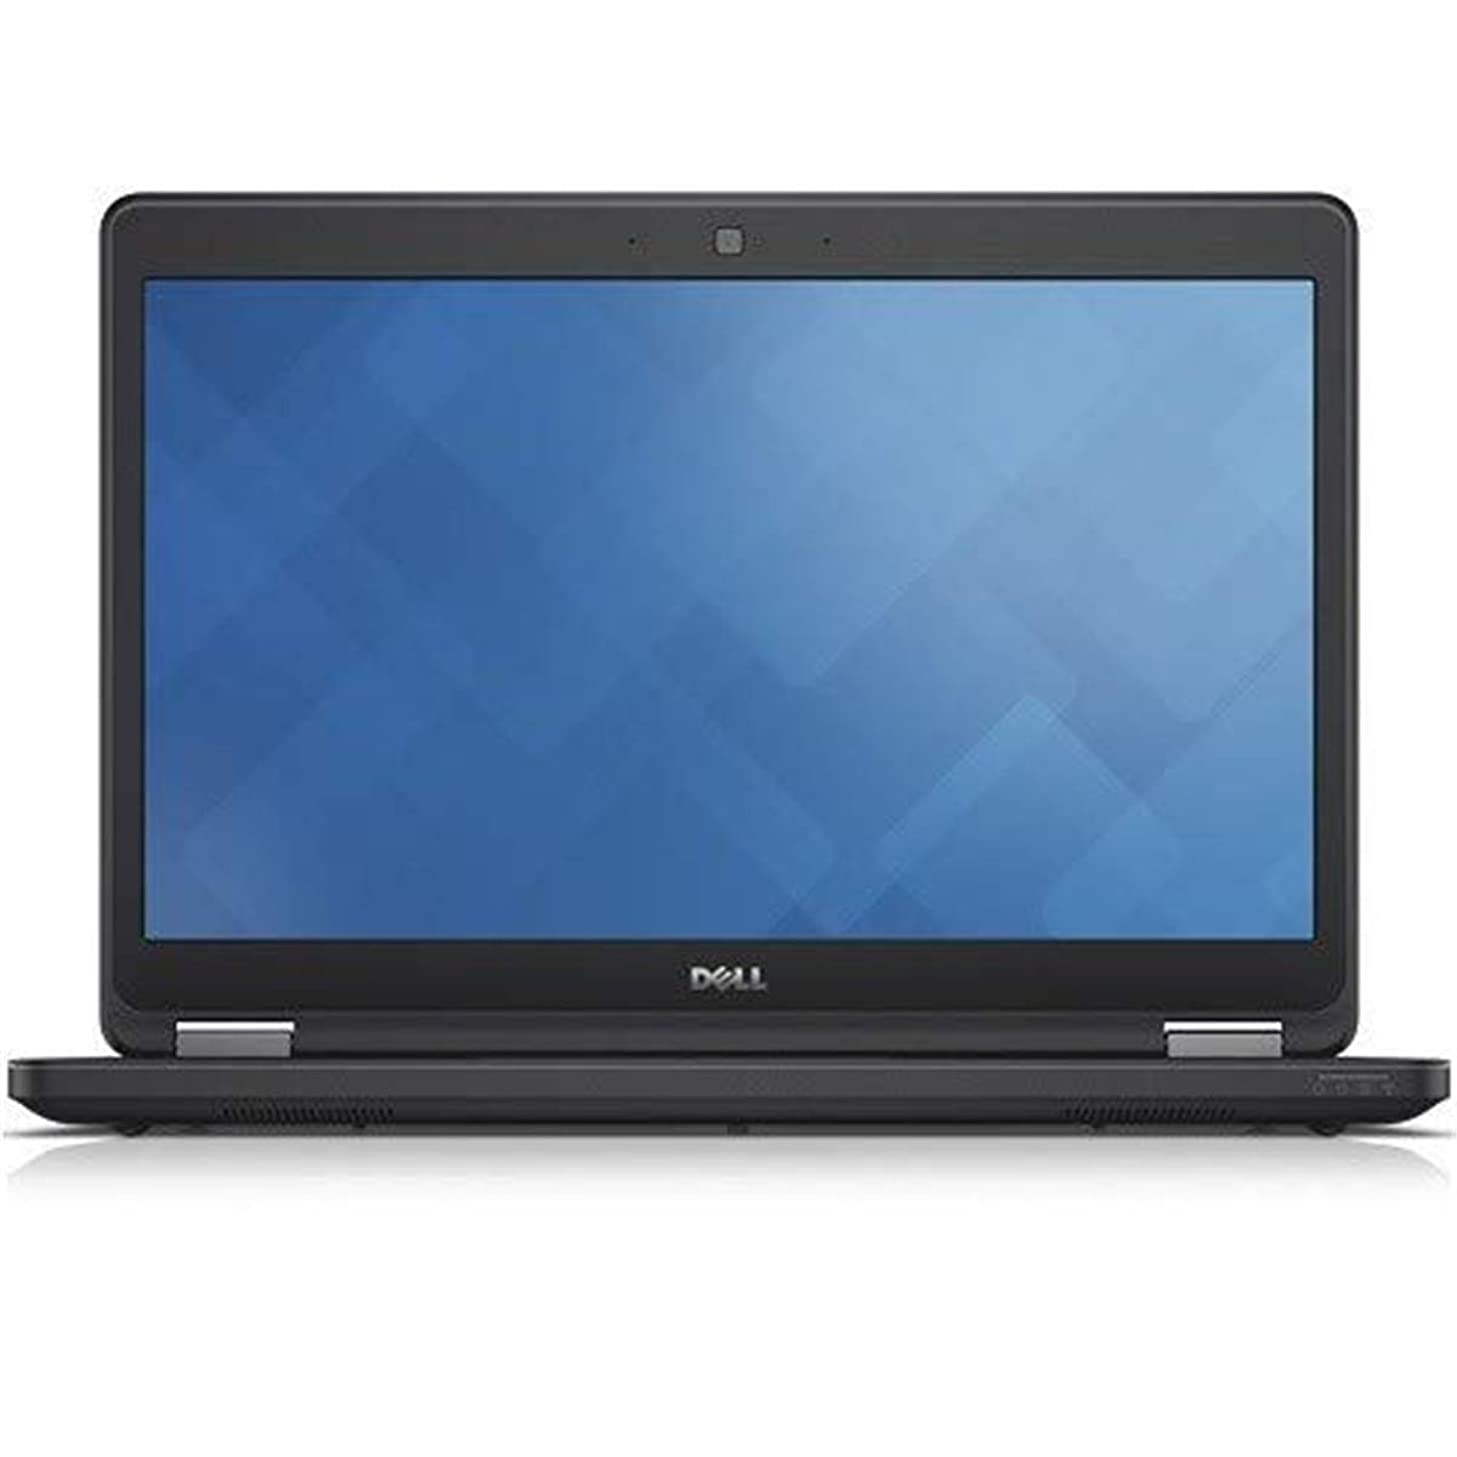 "2019 Dell Latitude E5450 14"" FHD Business Laptop Computer, Intel Core i5-5300U up to 2.9GHz, 16GB RAM, 500GB HDD, AC WiFi, Bluetooth, USB 3.0, HDMI, Windows 10 Professsional (Certified Refuribsed)"